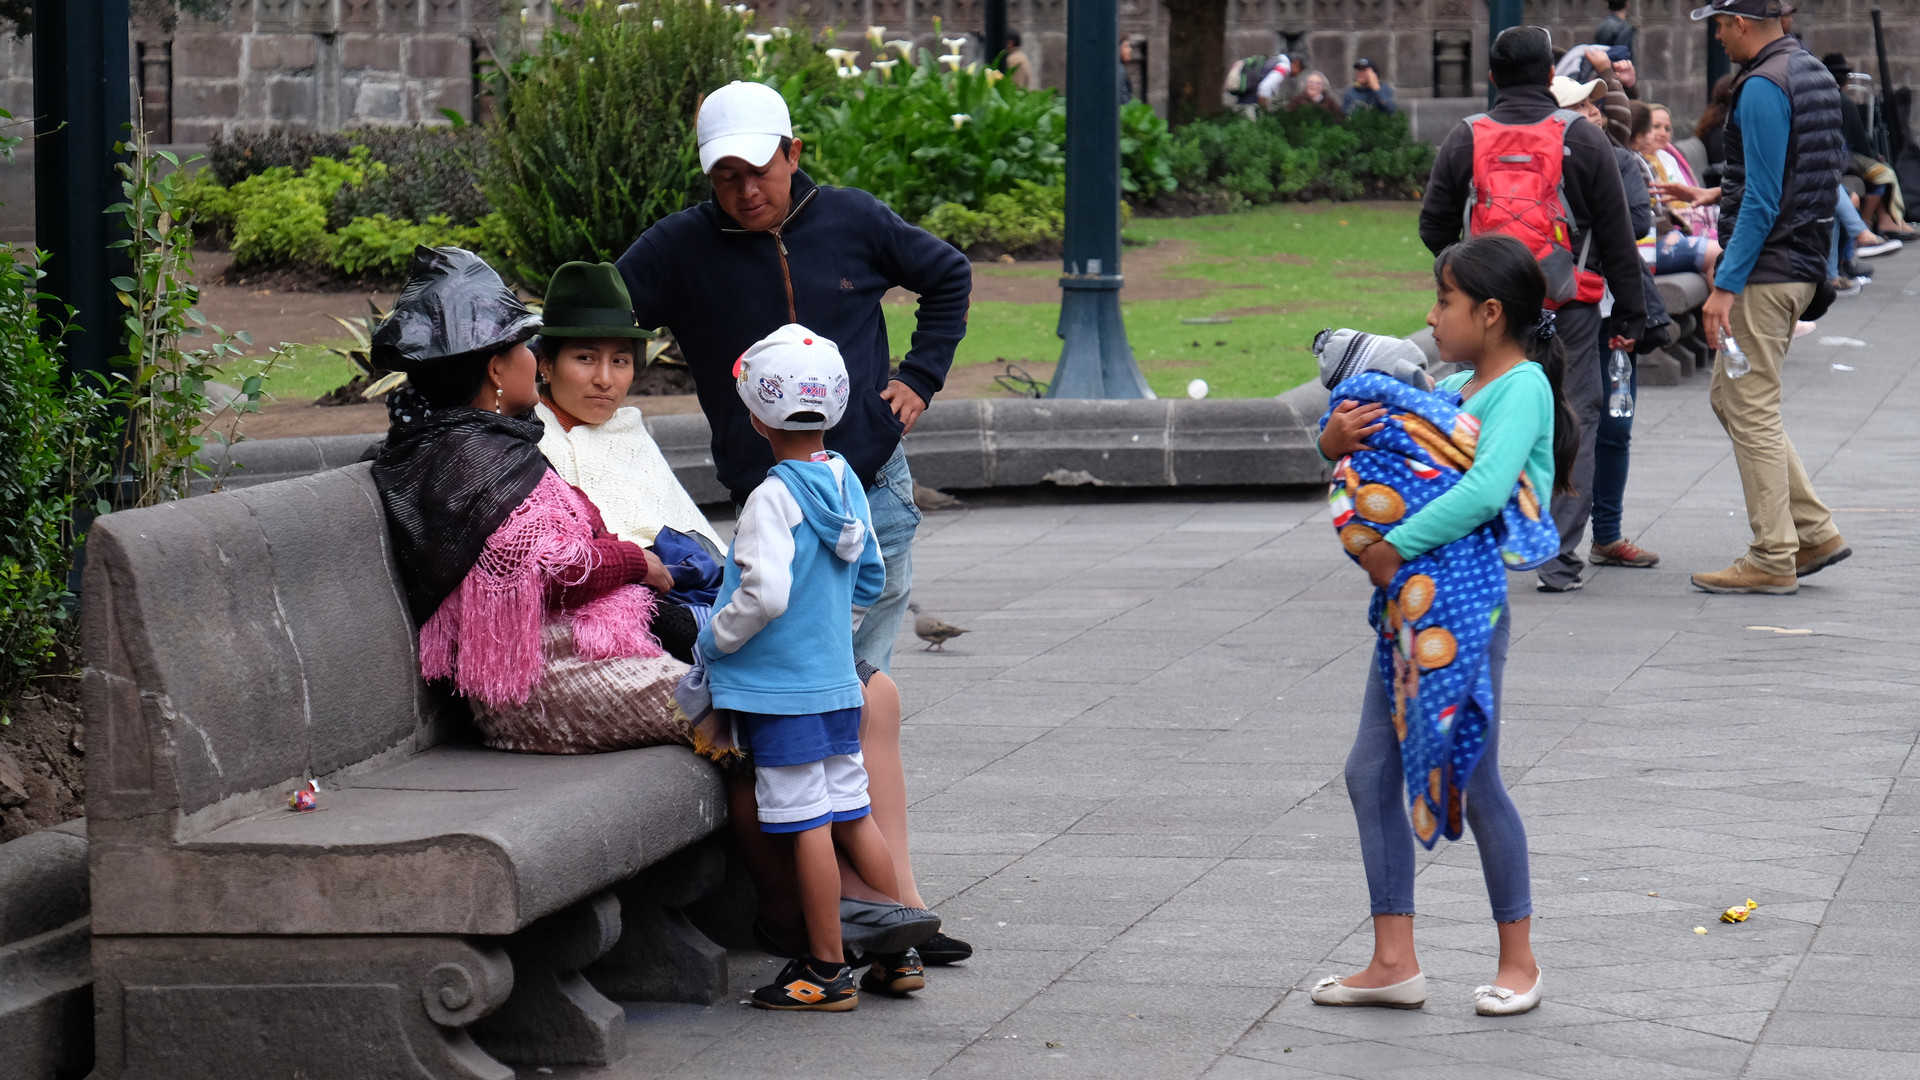 Chatting in the Plaza de la Independencia